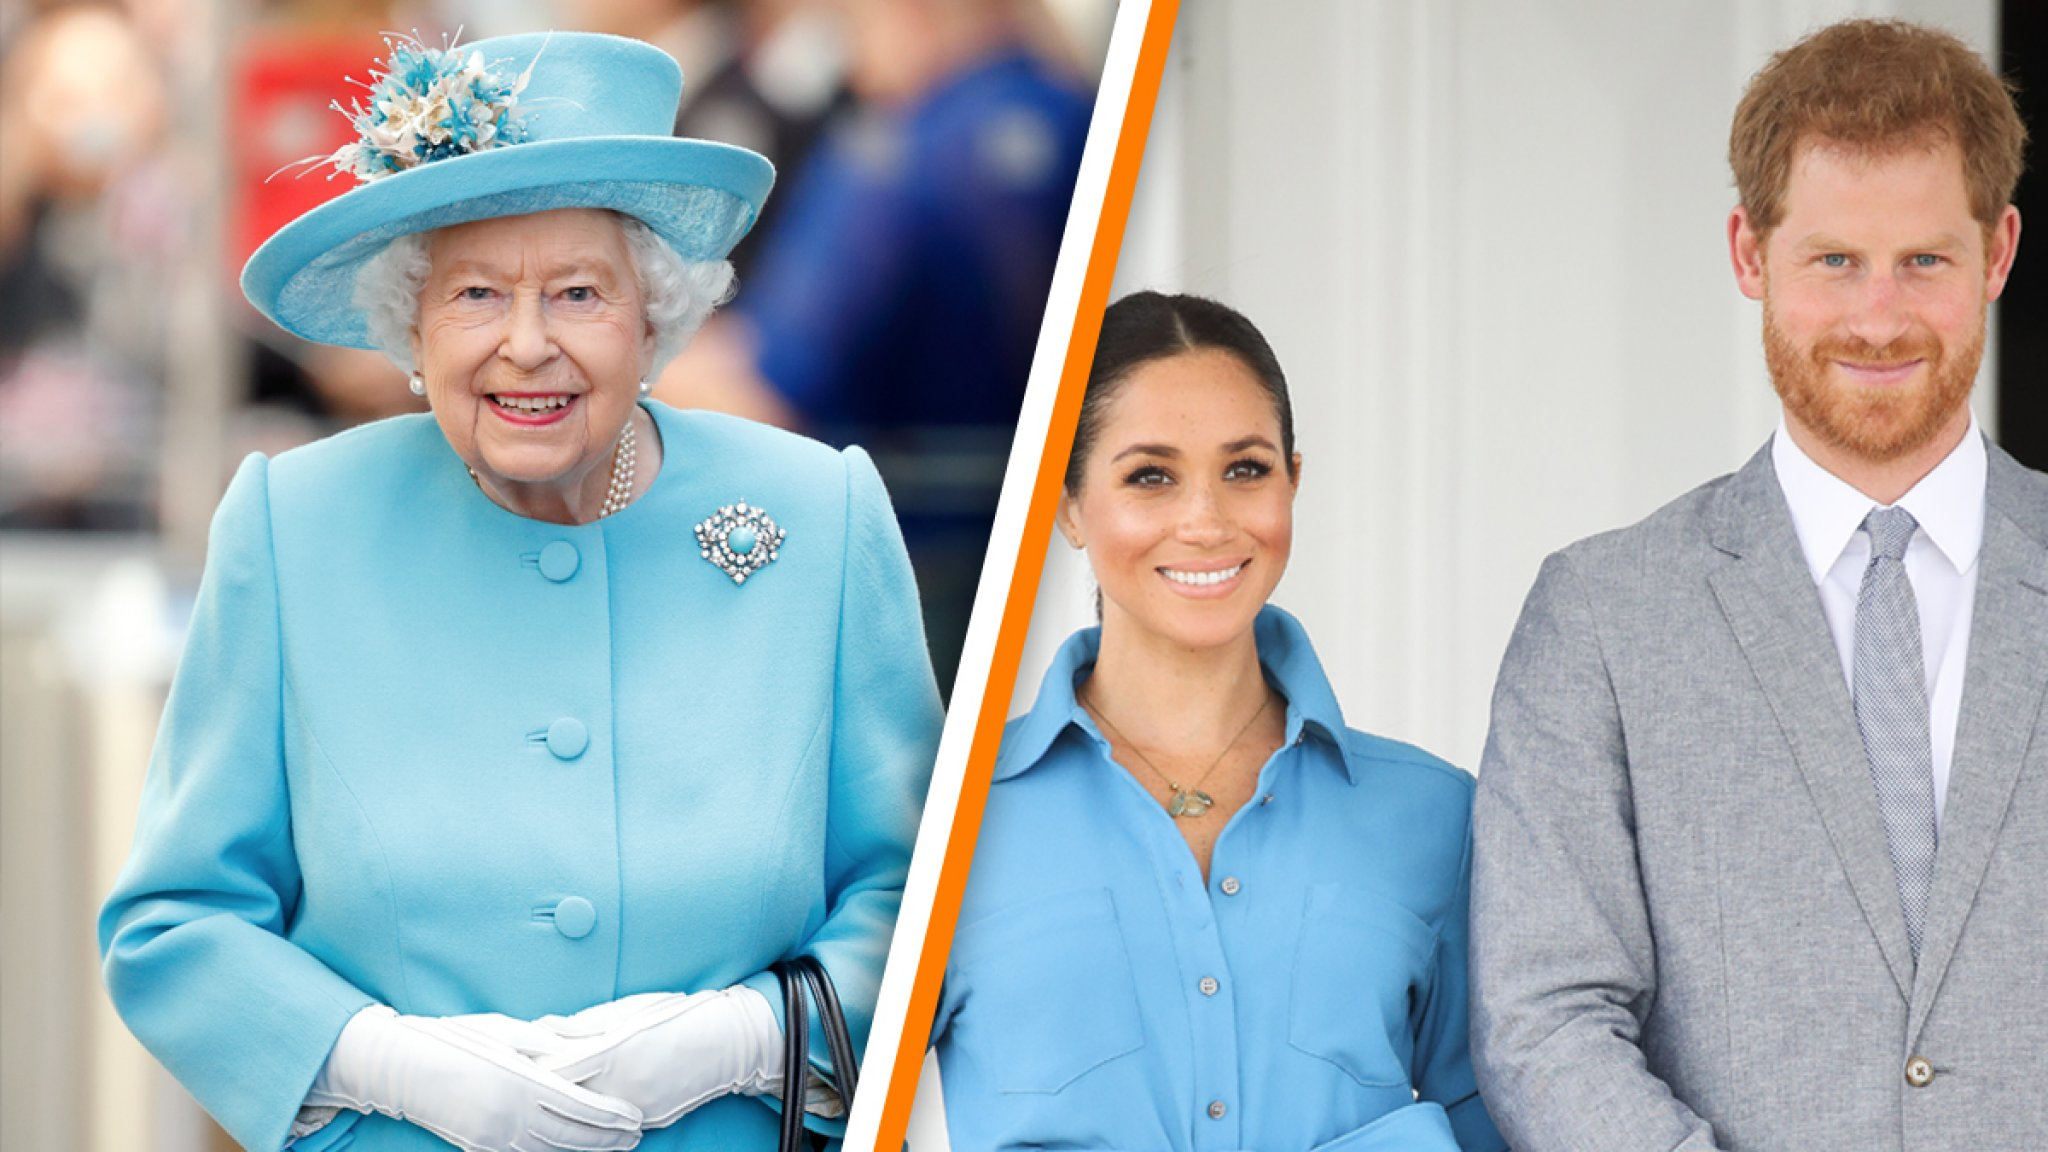 Queen Elizabeth at an emergency meeting: who will play Harry and Meghan?